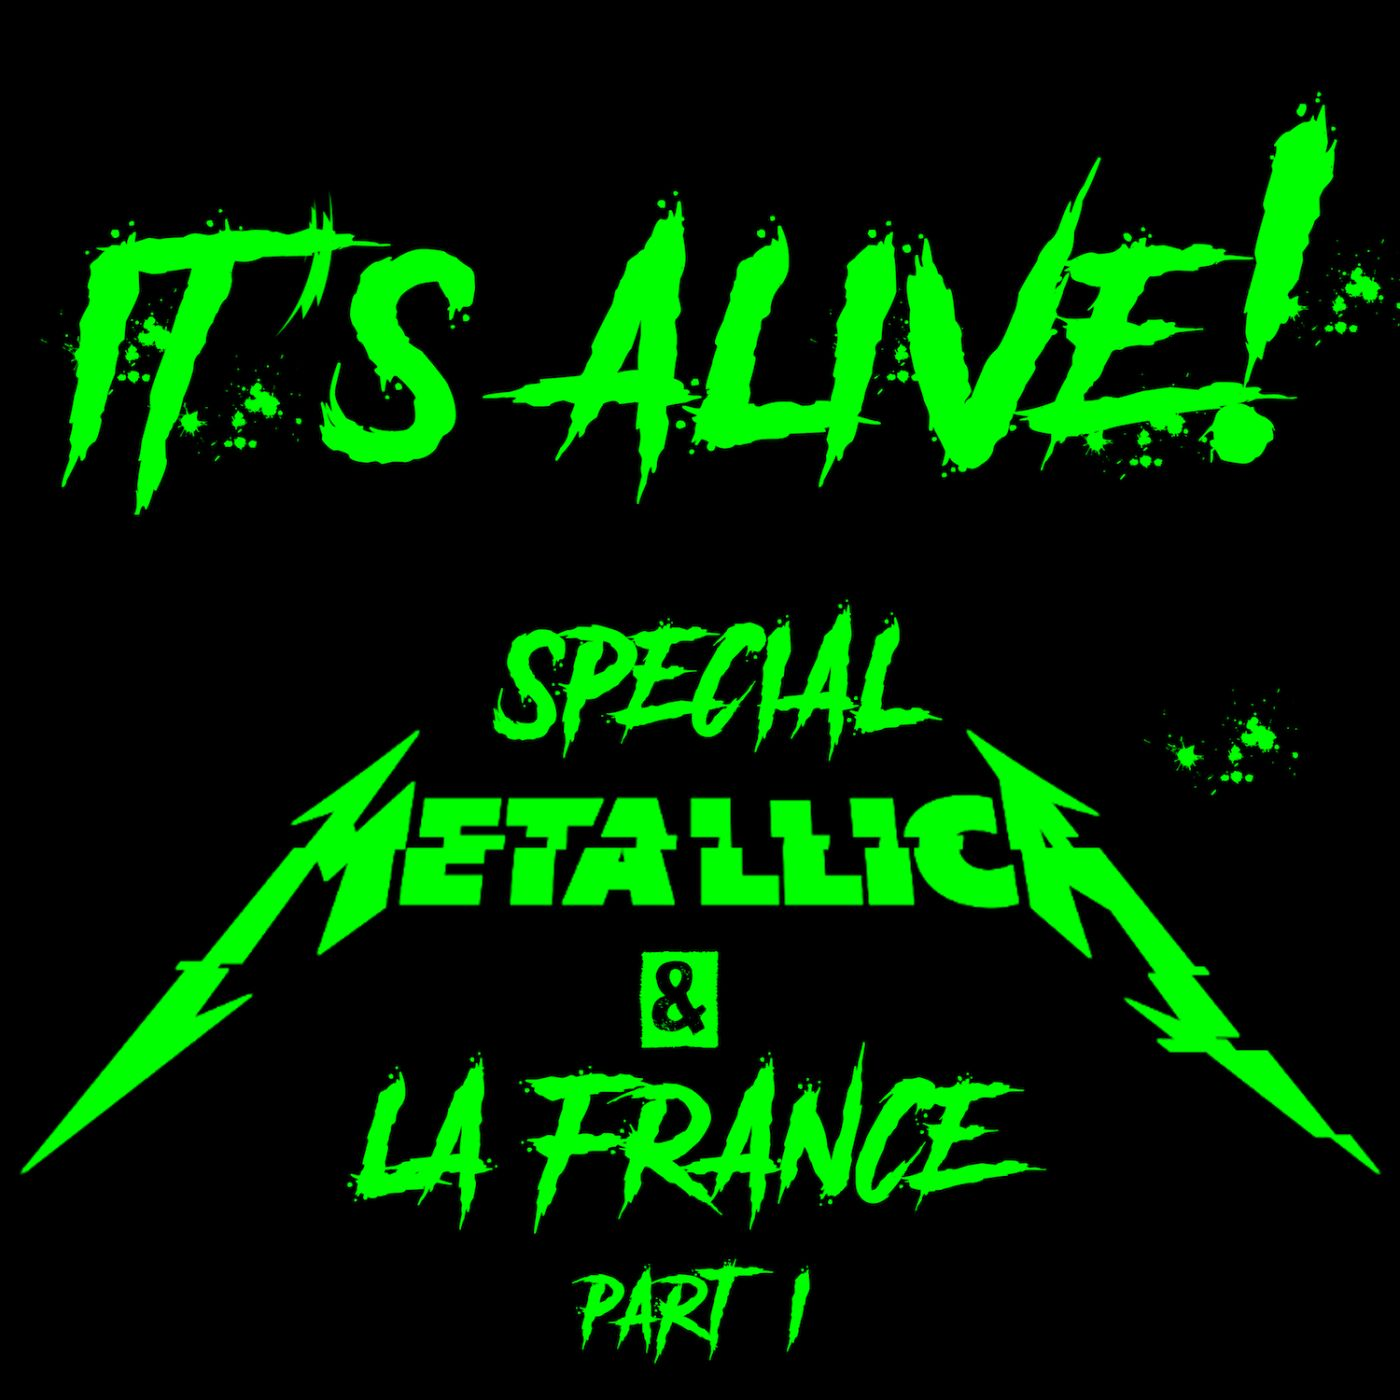 It's Alive! Special Metallica Part.1